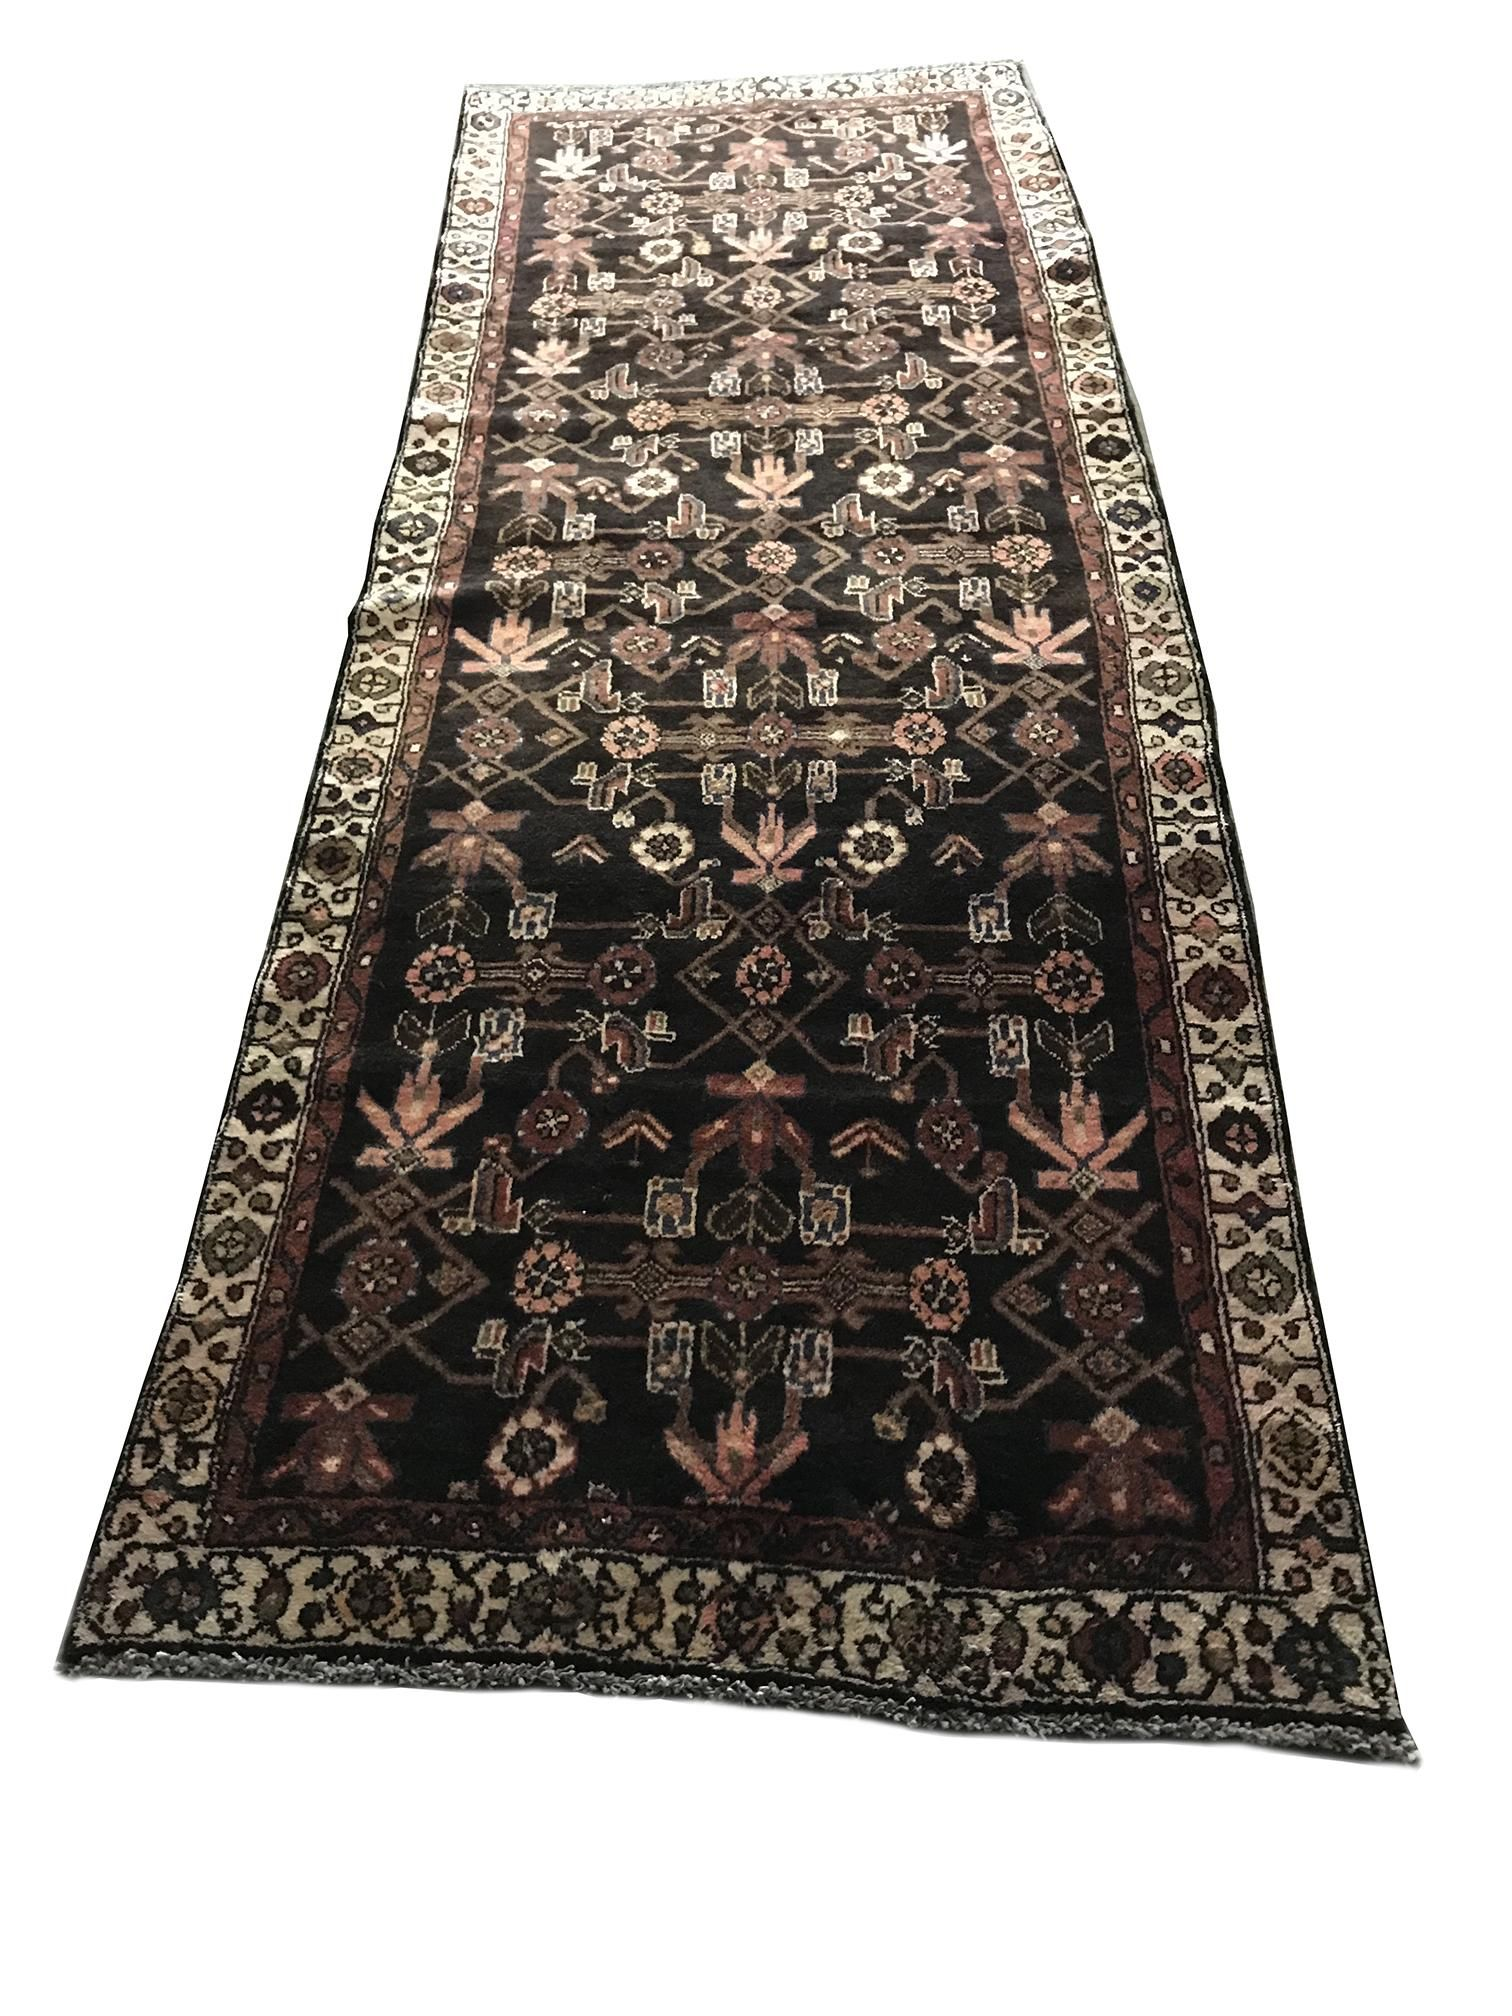 Persian tabriz 794a style rug wool pile vintage hand